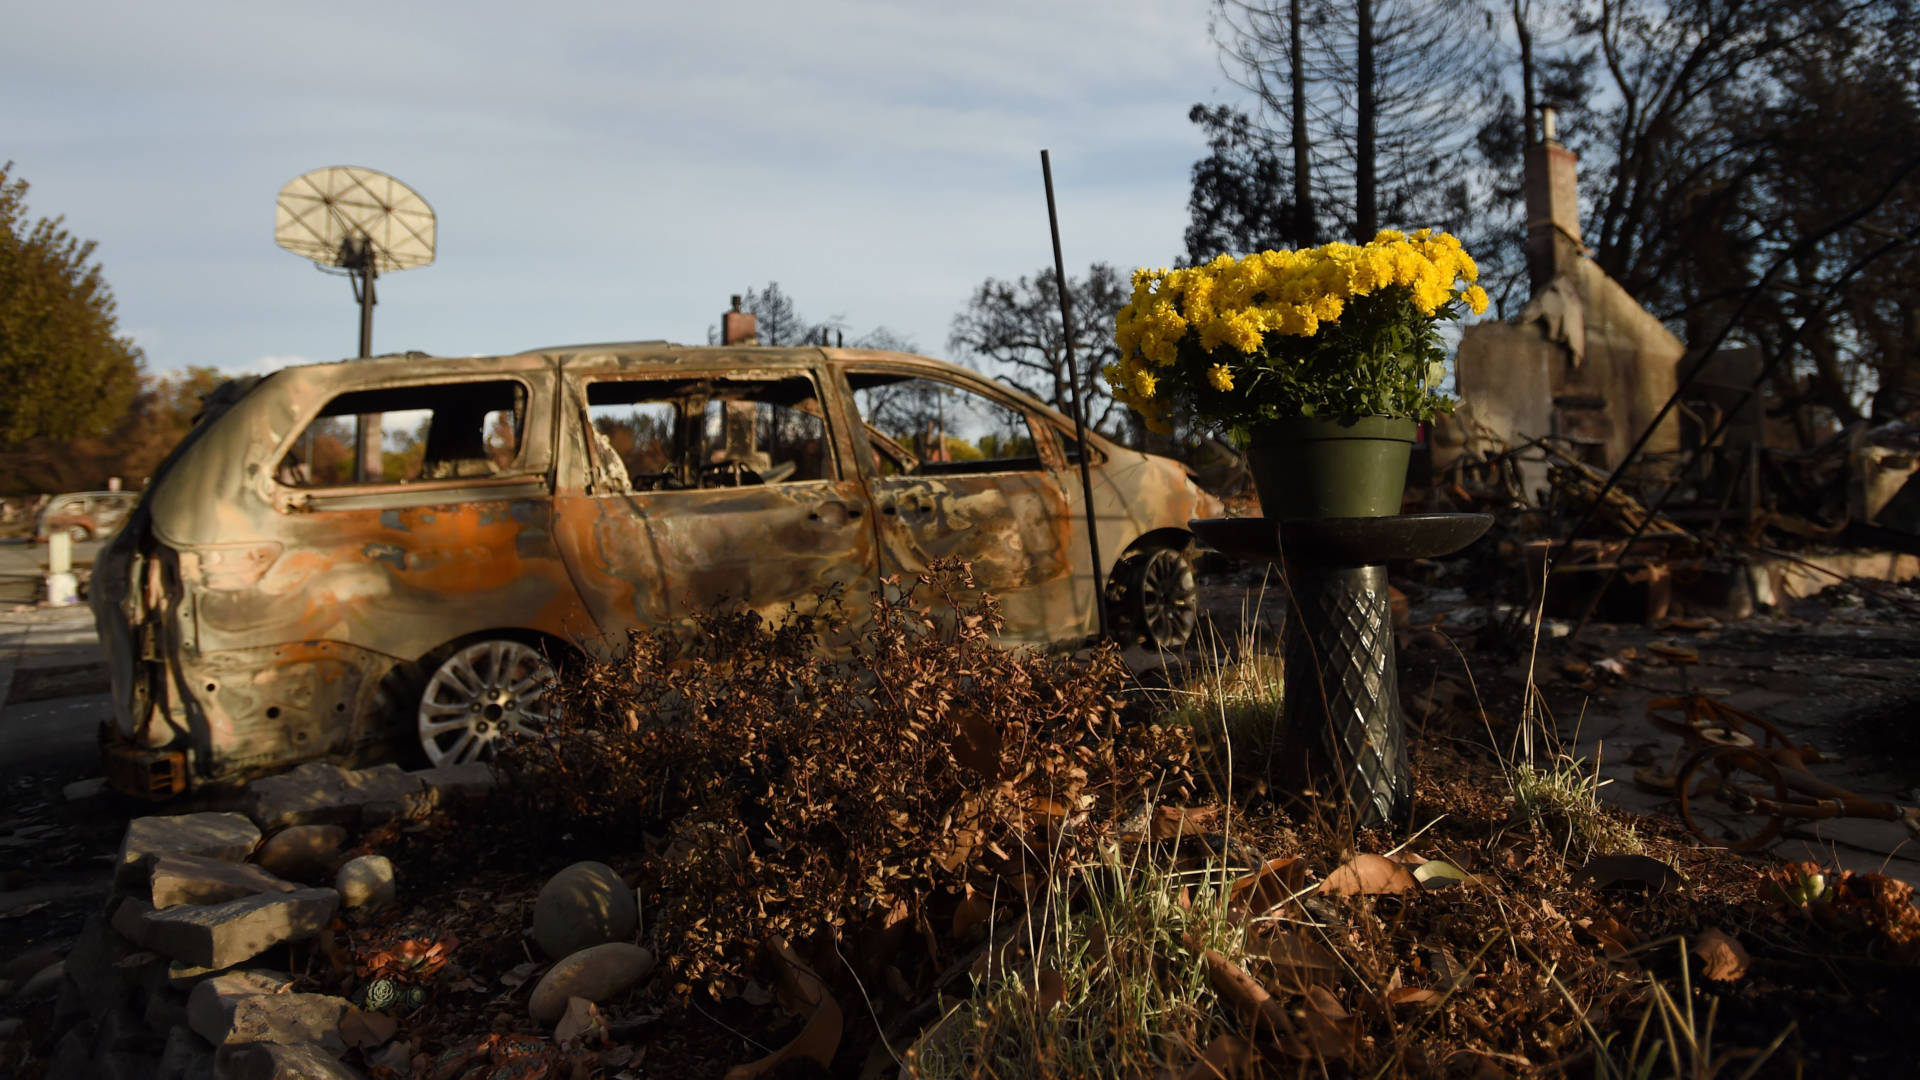 Fresh flowers are seen at a burned residence in the Coffey Park area of Santa Rosa, California on Oct. 20, 2017. JOSH EDELSON/AFP/Getty Images